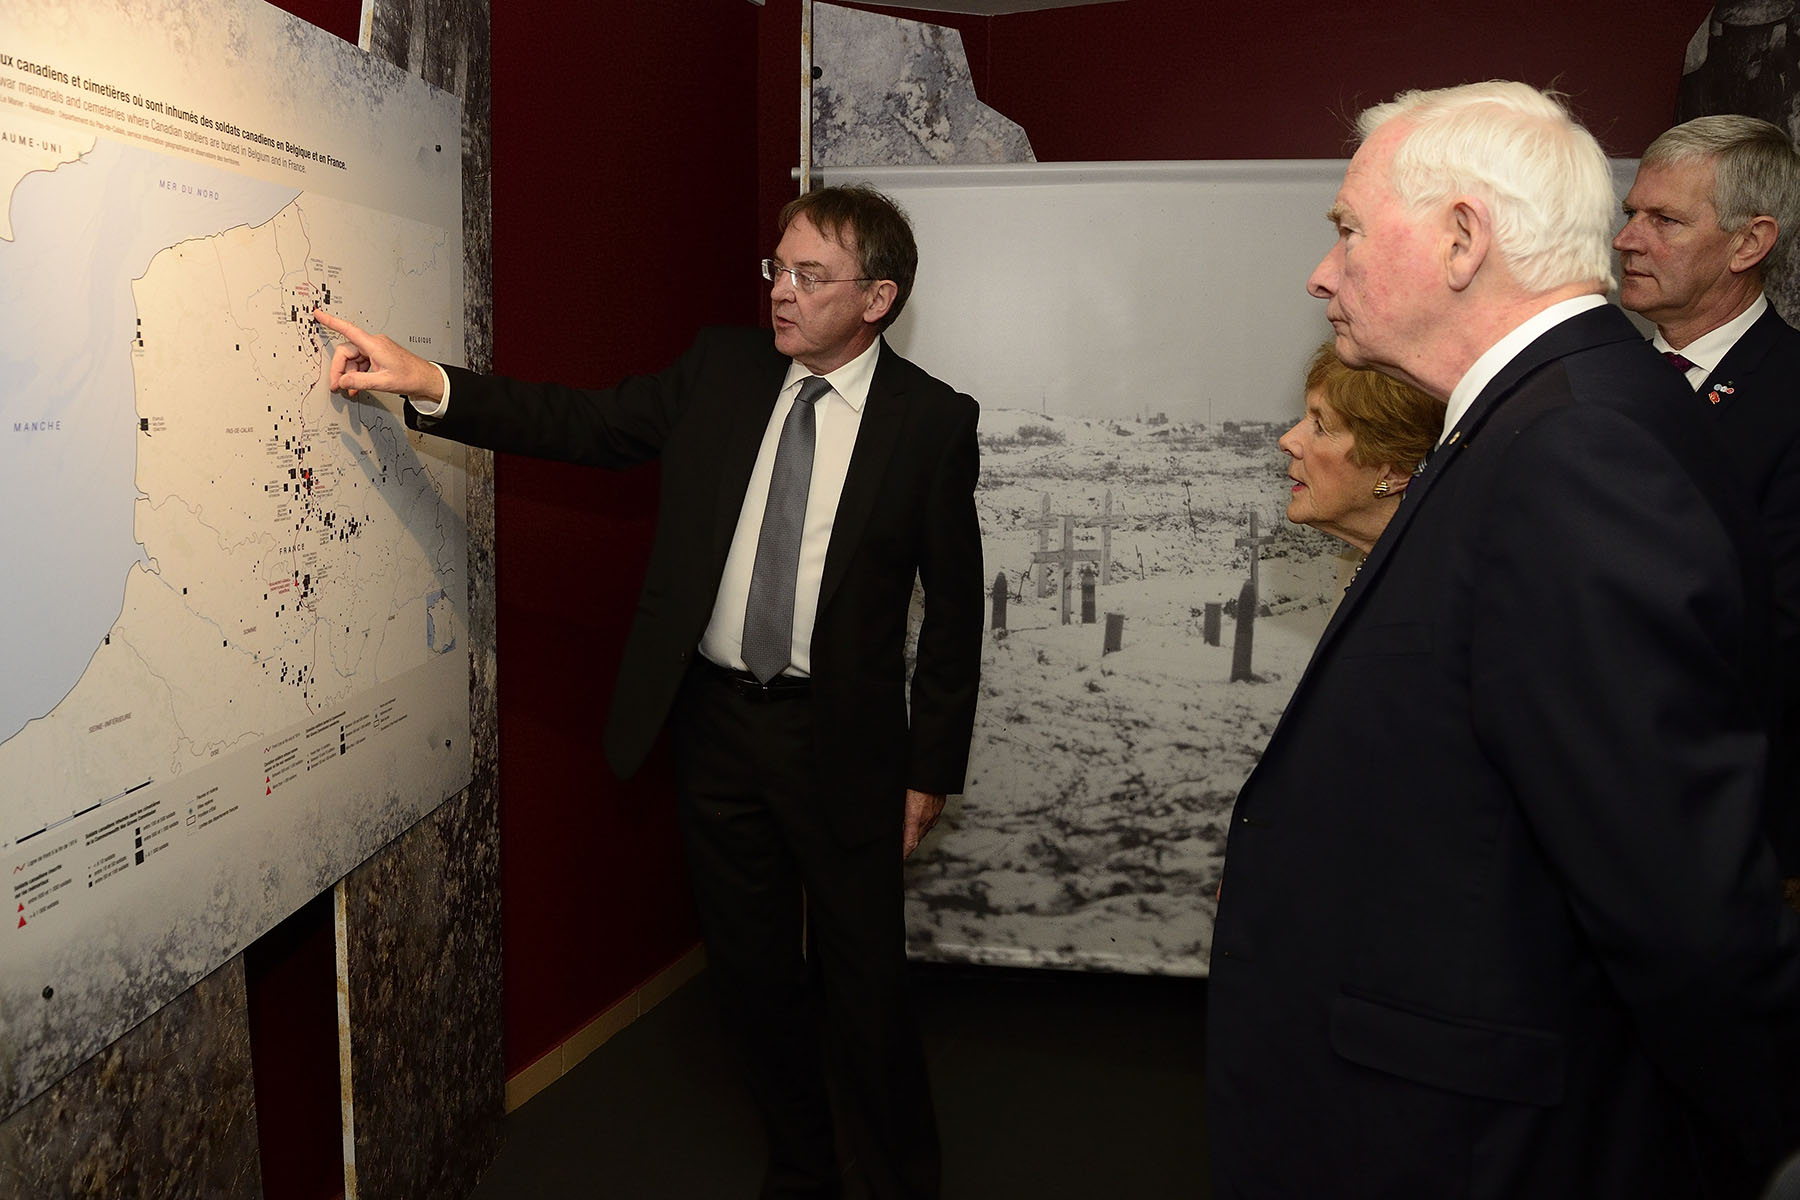 Their Excellencies participated in the opening of Vimy 1917: Canadians and the Underground War. Presented by Le Département du Pas-de-Calais and created in partnership with Library and Archives Canada, the exhibit sheds light on a little-known aspect of the Great War: the underground war fought by Canadian soldiers. The three-dimensional model depicts the underground cavities dug in Artois and Picardy by some 800 Canadian soldiers trying to shield themselves from the deadly force of the artillery. While they waited between assaults, the soldiers left their mark in the form of graffiti and sculptures etched into the chalk walls.